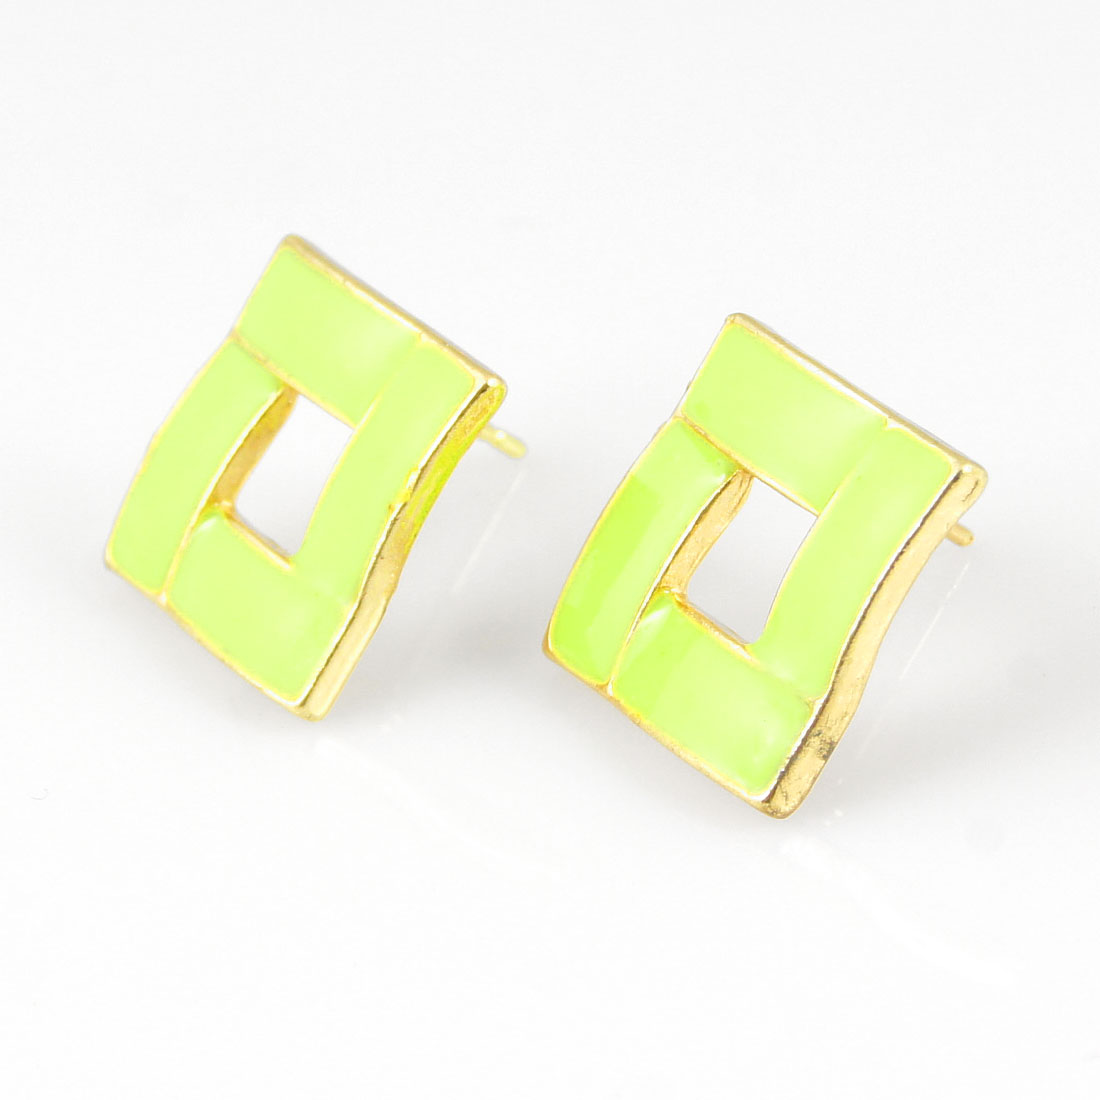 Pair Hollow Square Accent Mini Stud Earrings Pale Green for Lady